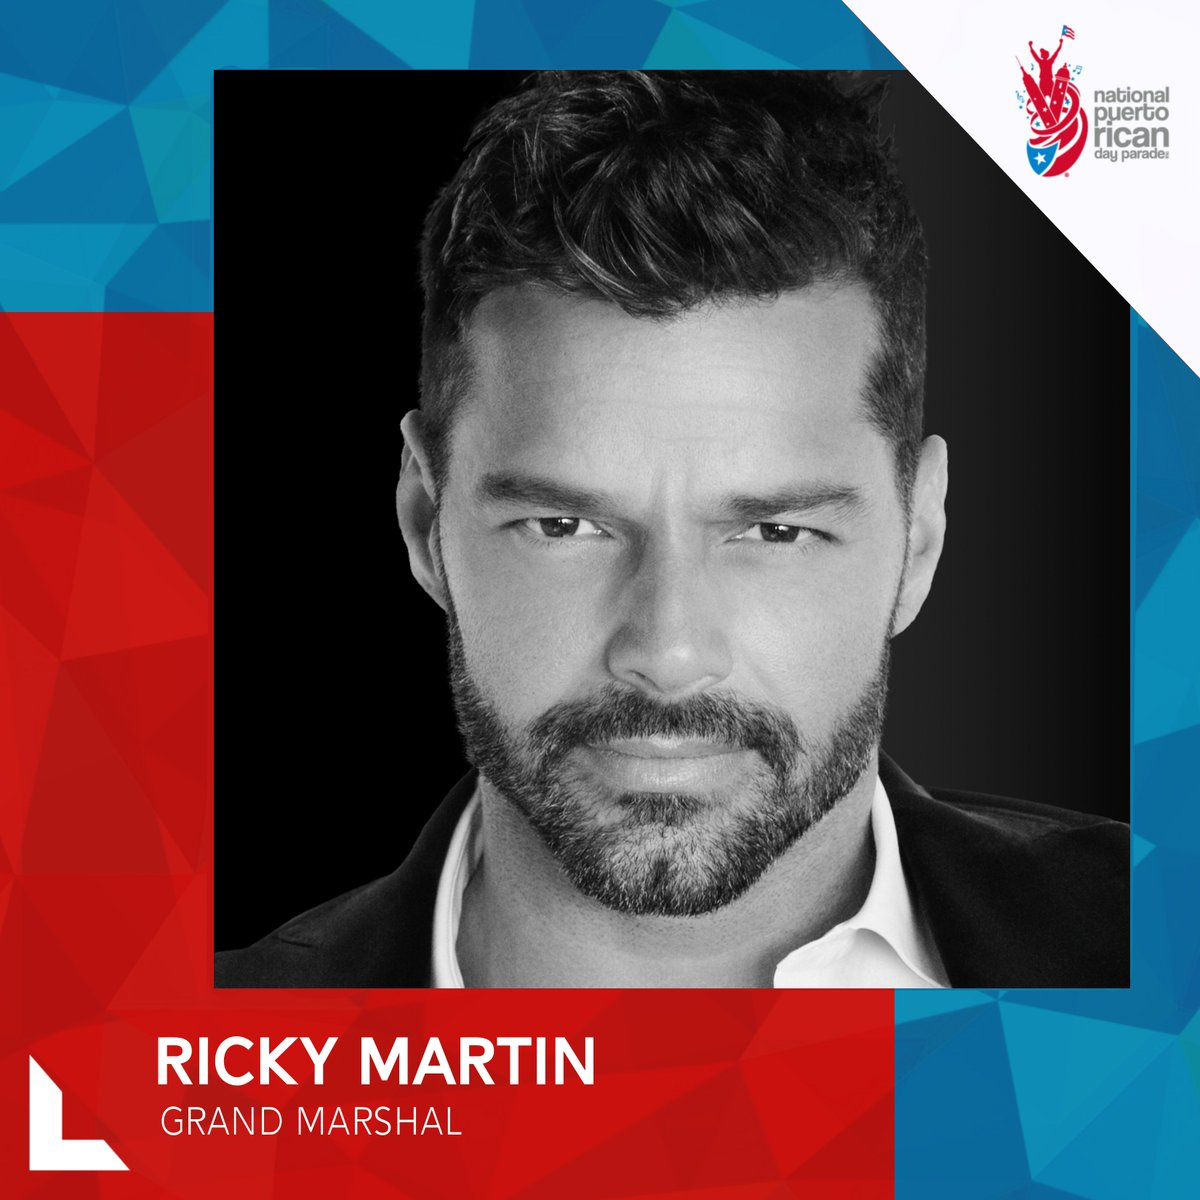 We proudly announce this year's Grand Marshal @ricky_martin! Get ready for an amazing time celebrating our culture & pride honoring Loíza and all the talent PR has to offer in the areas of entertainment, philanthropy, sports, education, arts & more. #PRParade #OrgulloBoricua